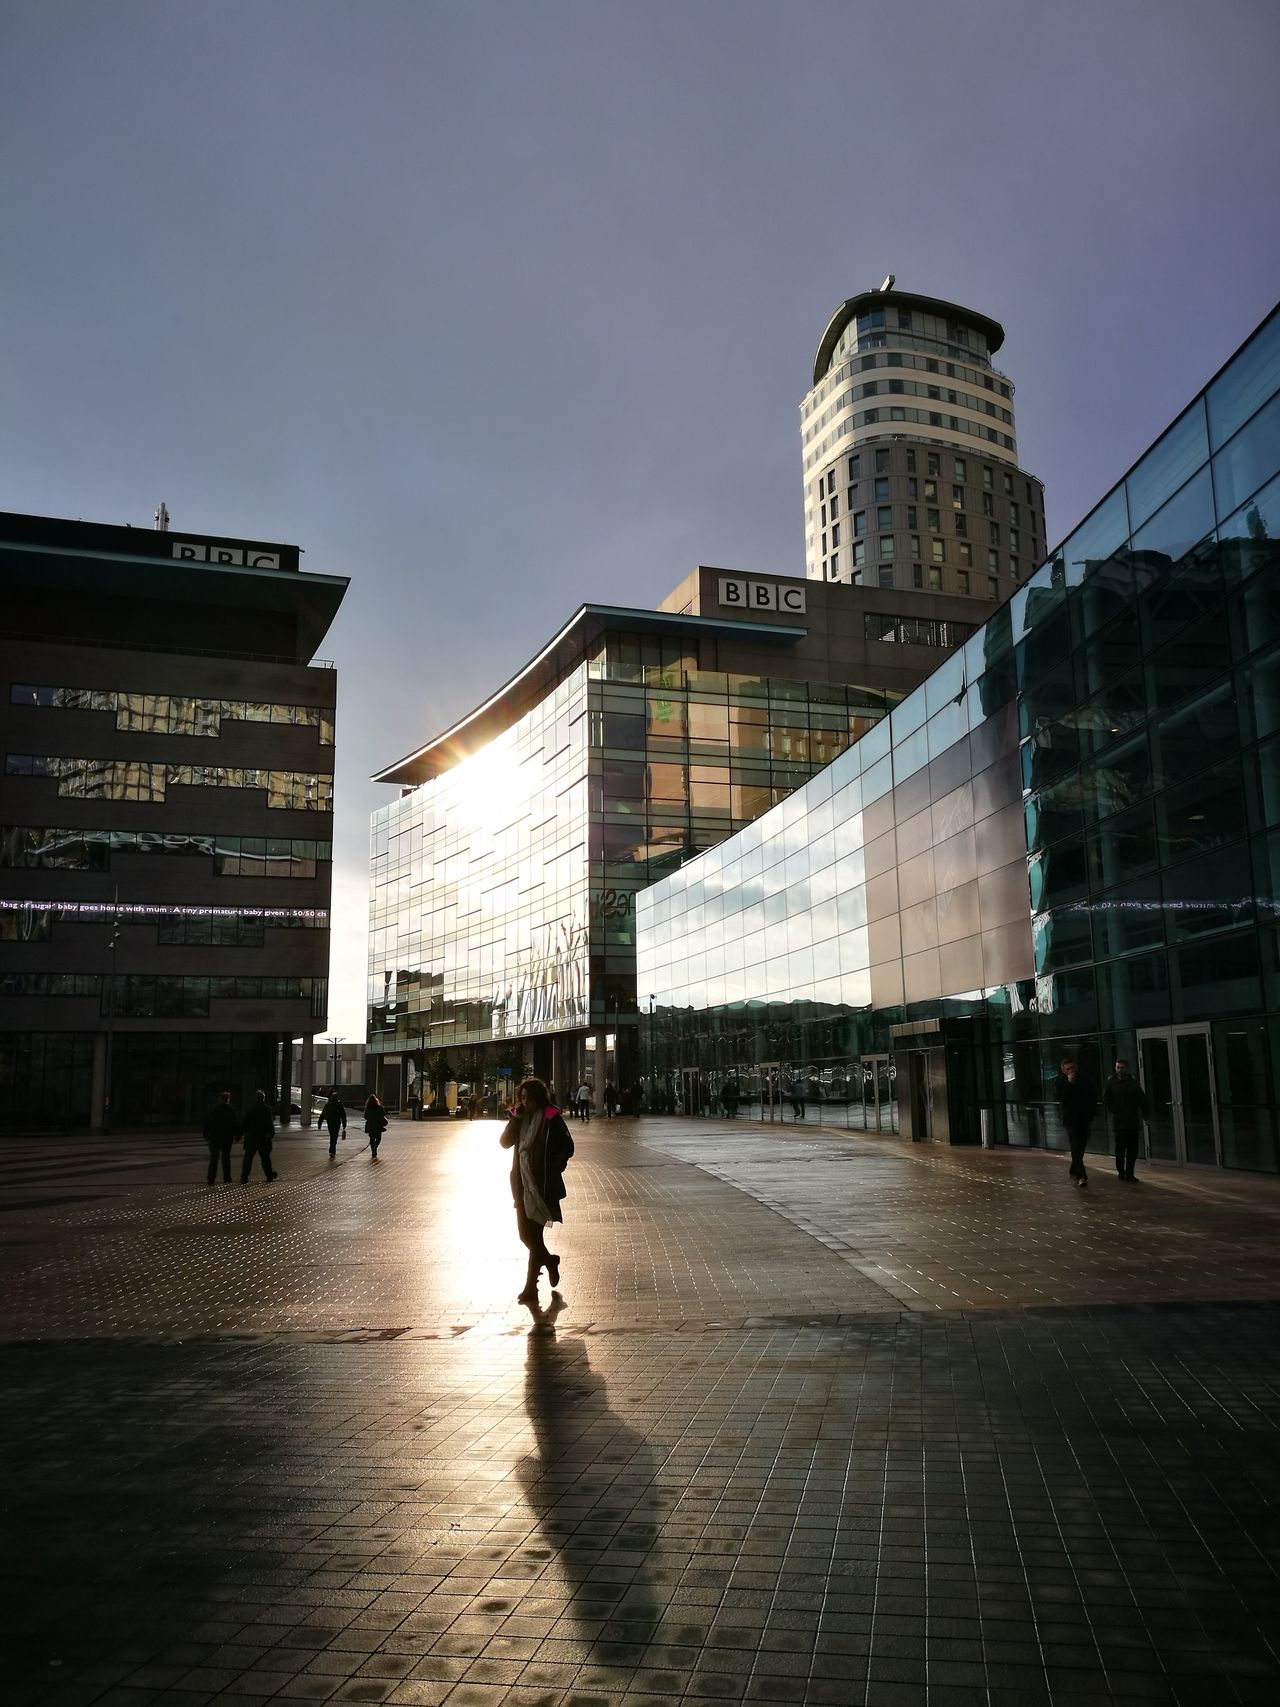 Built Structure Silhouette Architecture City Travel Destinations History Water Sky Outdoors Illuminated Adult Day Wintersun Mediacityuk SalfordQuays Manchester Silhouette City Only Men People Adults Only